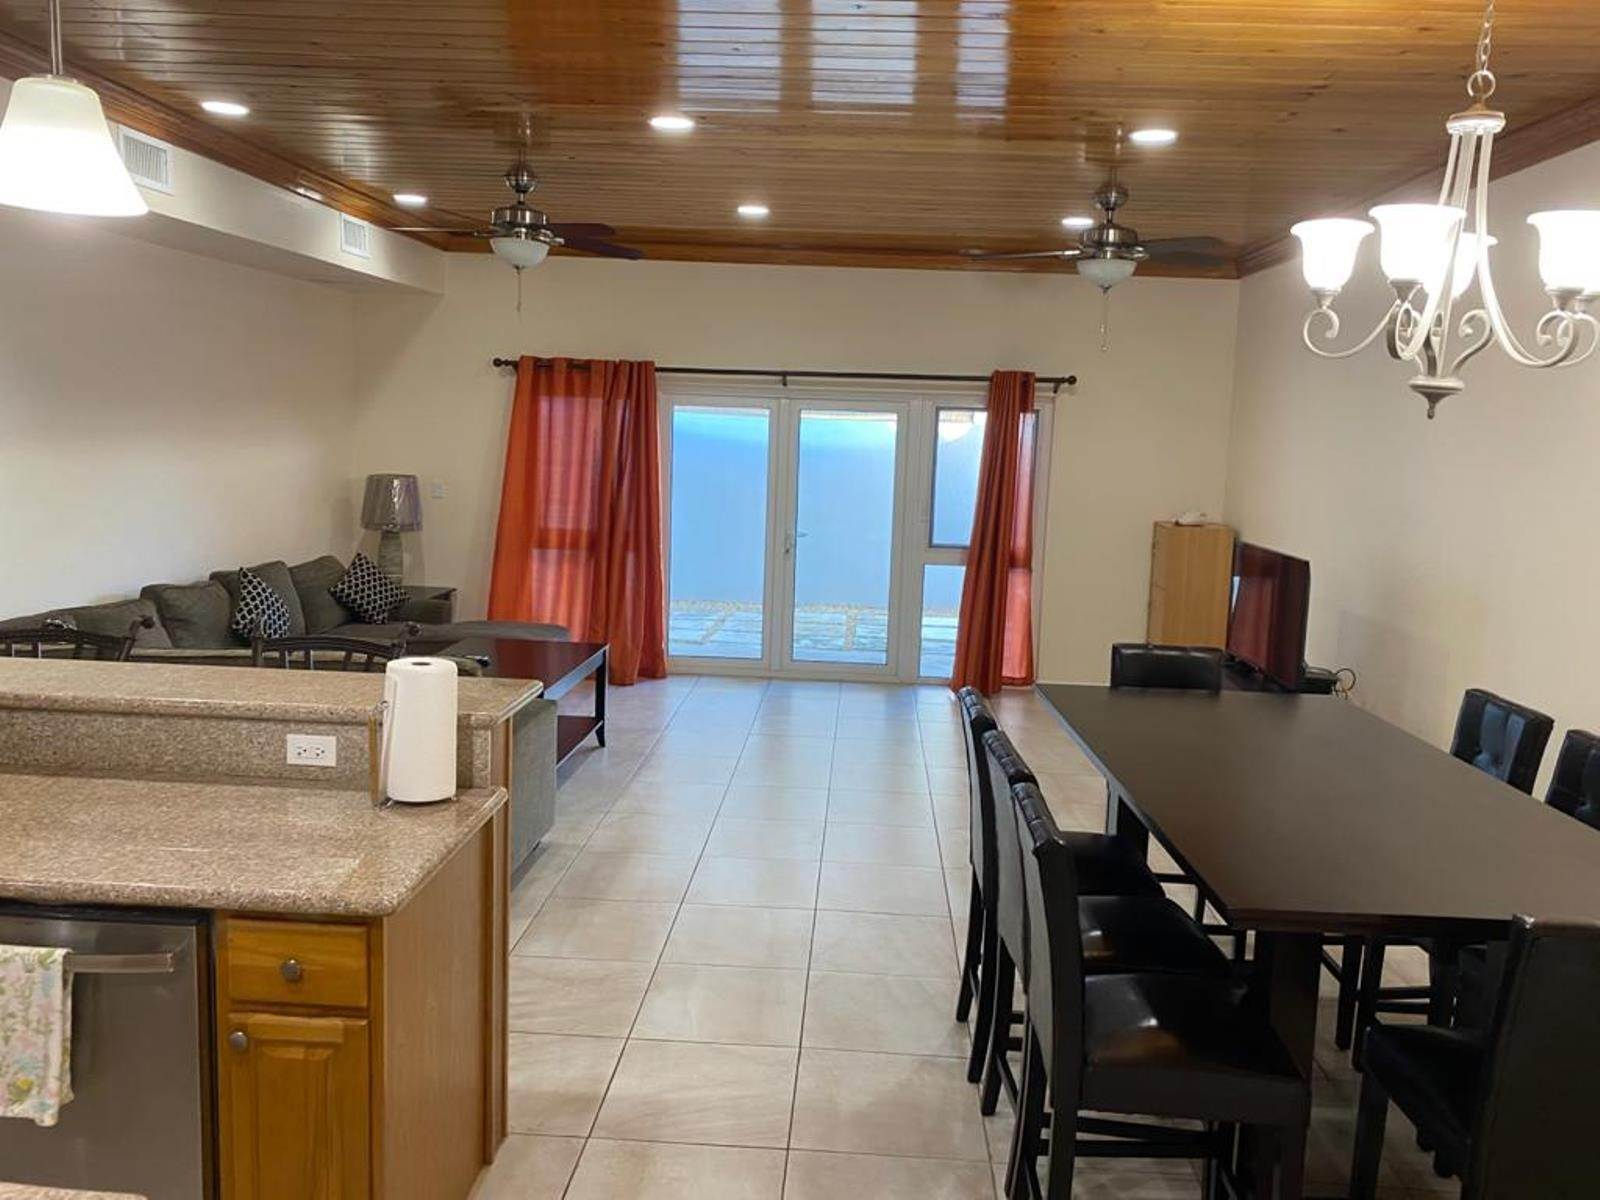 Co-op / Condo for Rent at Immaculate Townhouse in the heart of Cable Beach - MLS 42461 Cable Beach, Nassau And Paradise Island, Bahamas